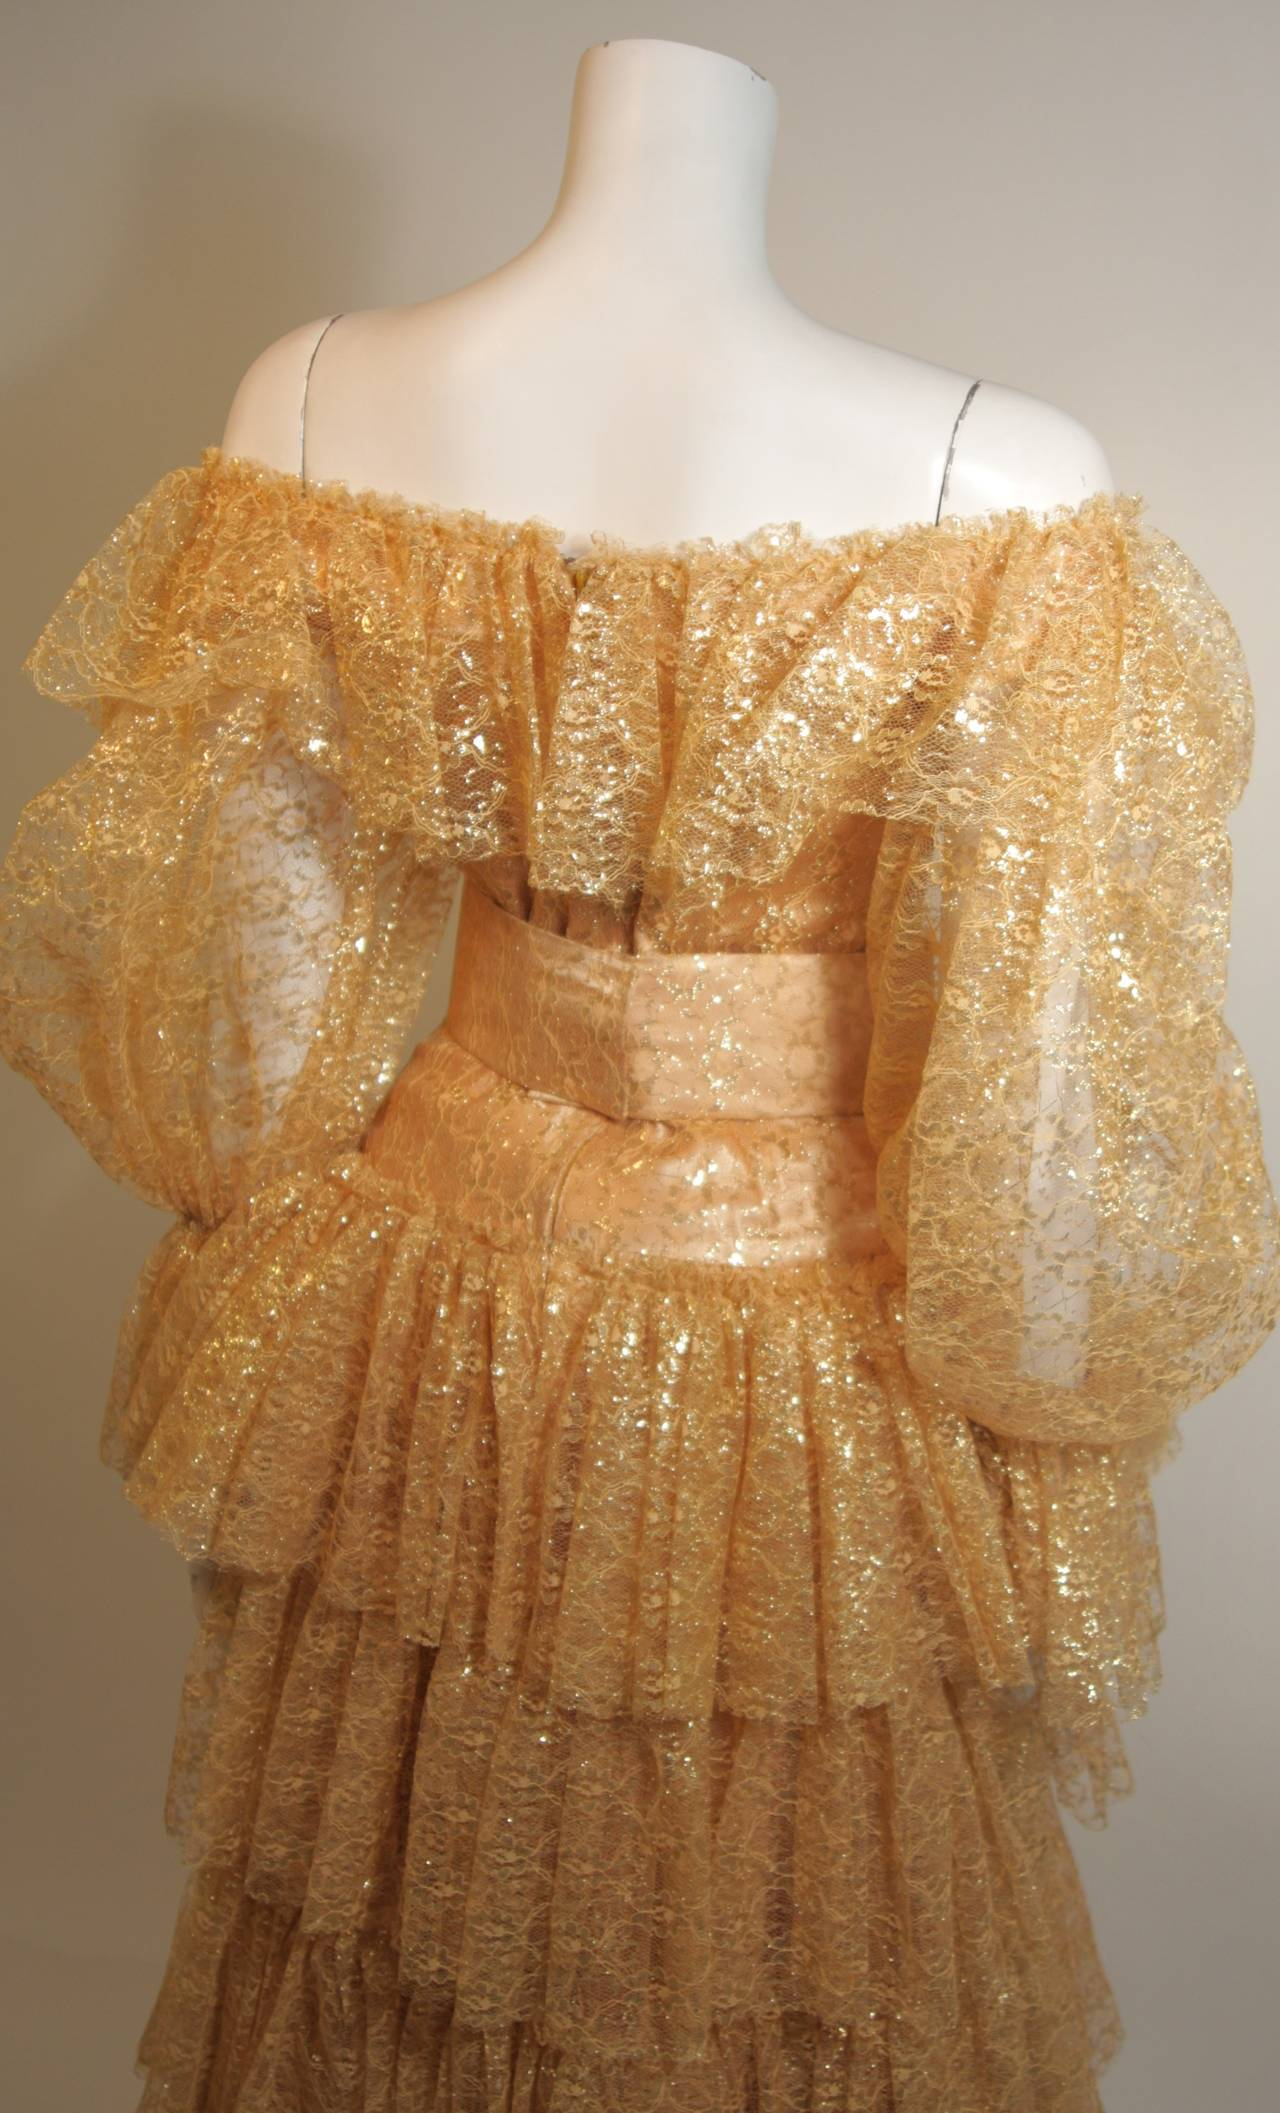 Attributed to Travilla Gold Tiered Lace Ball Gown with sheer lace sleeves size 4 For Sale 2